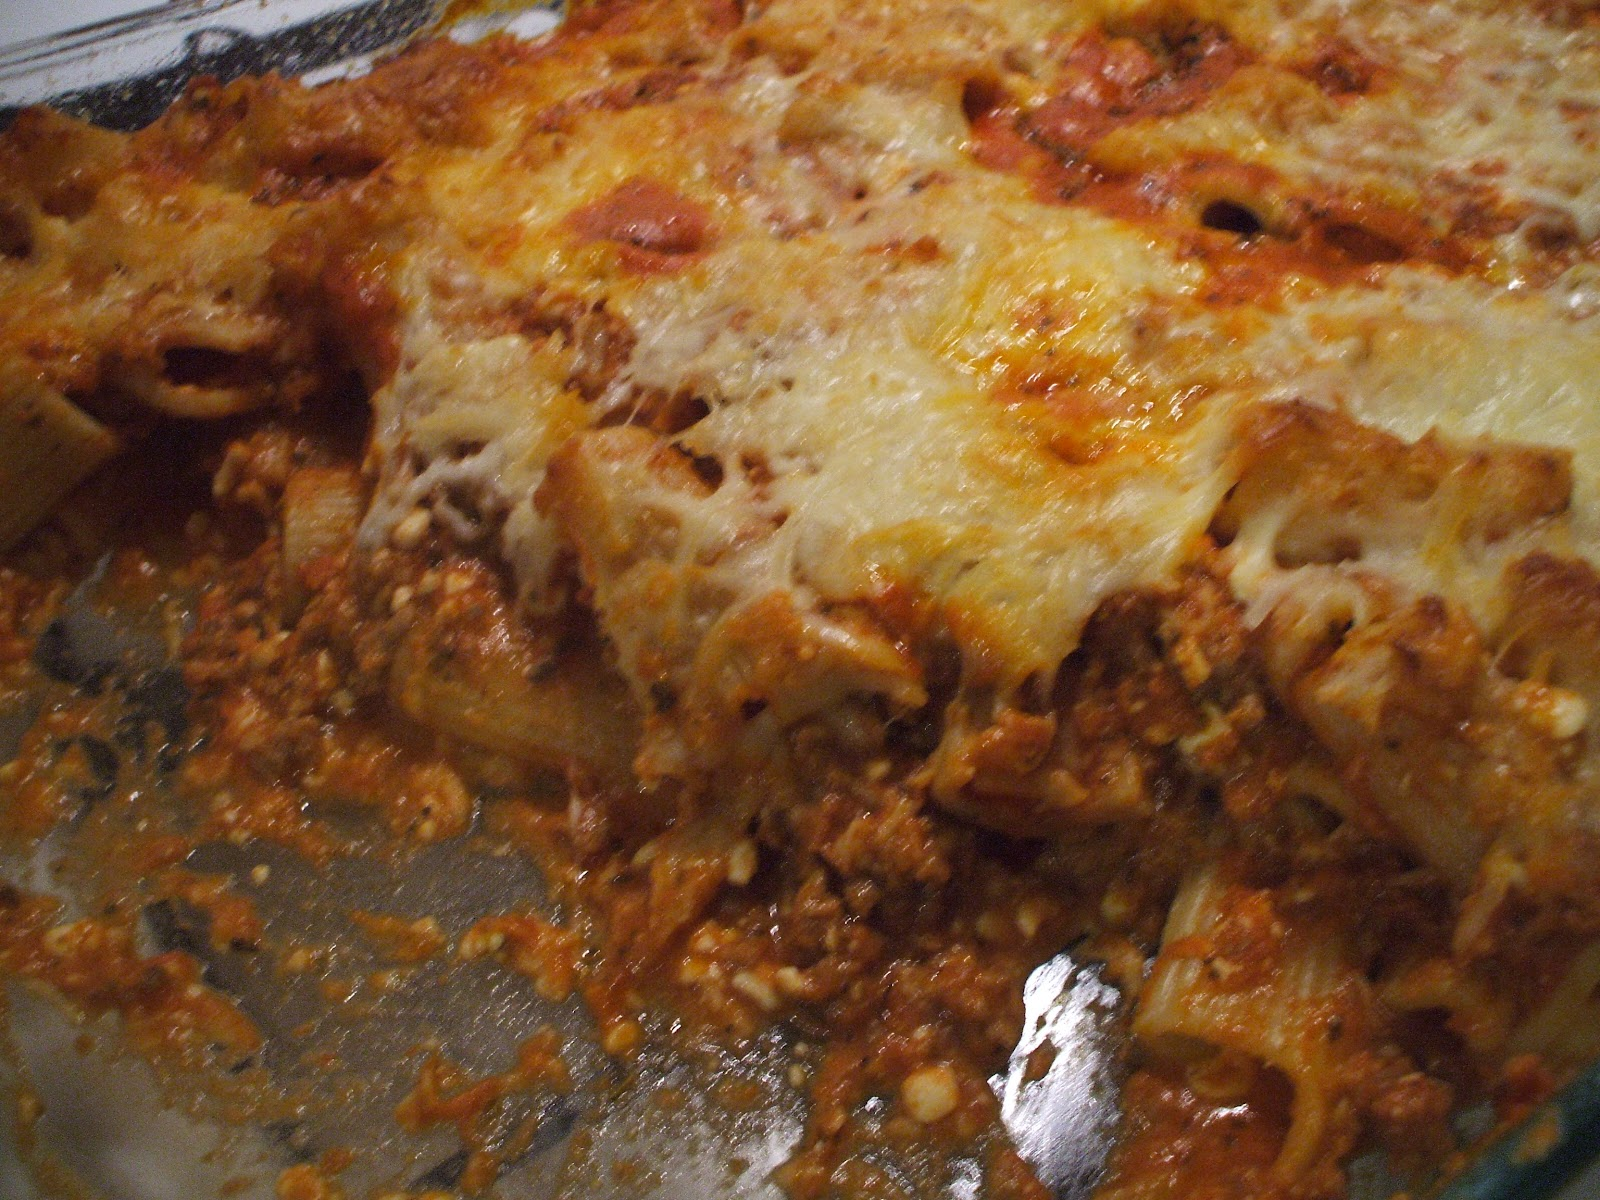 Baked Ziti - very easy and good when you need a large dish!